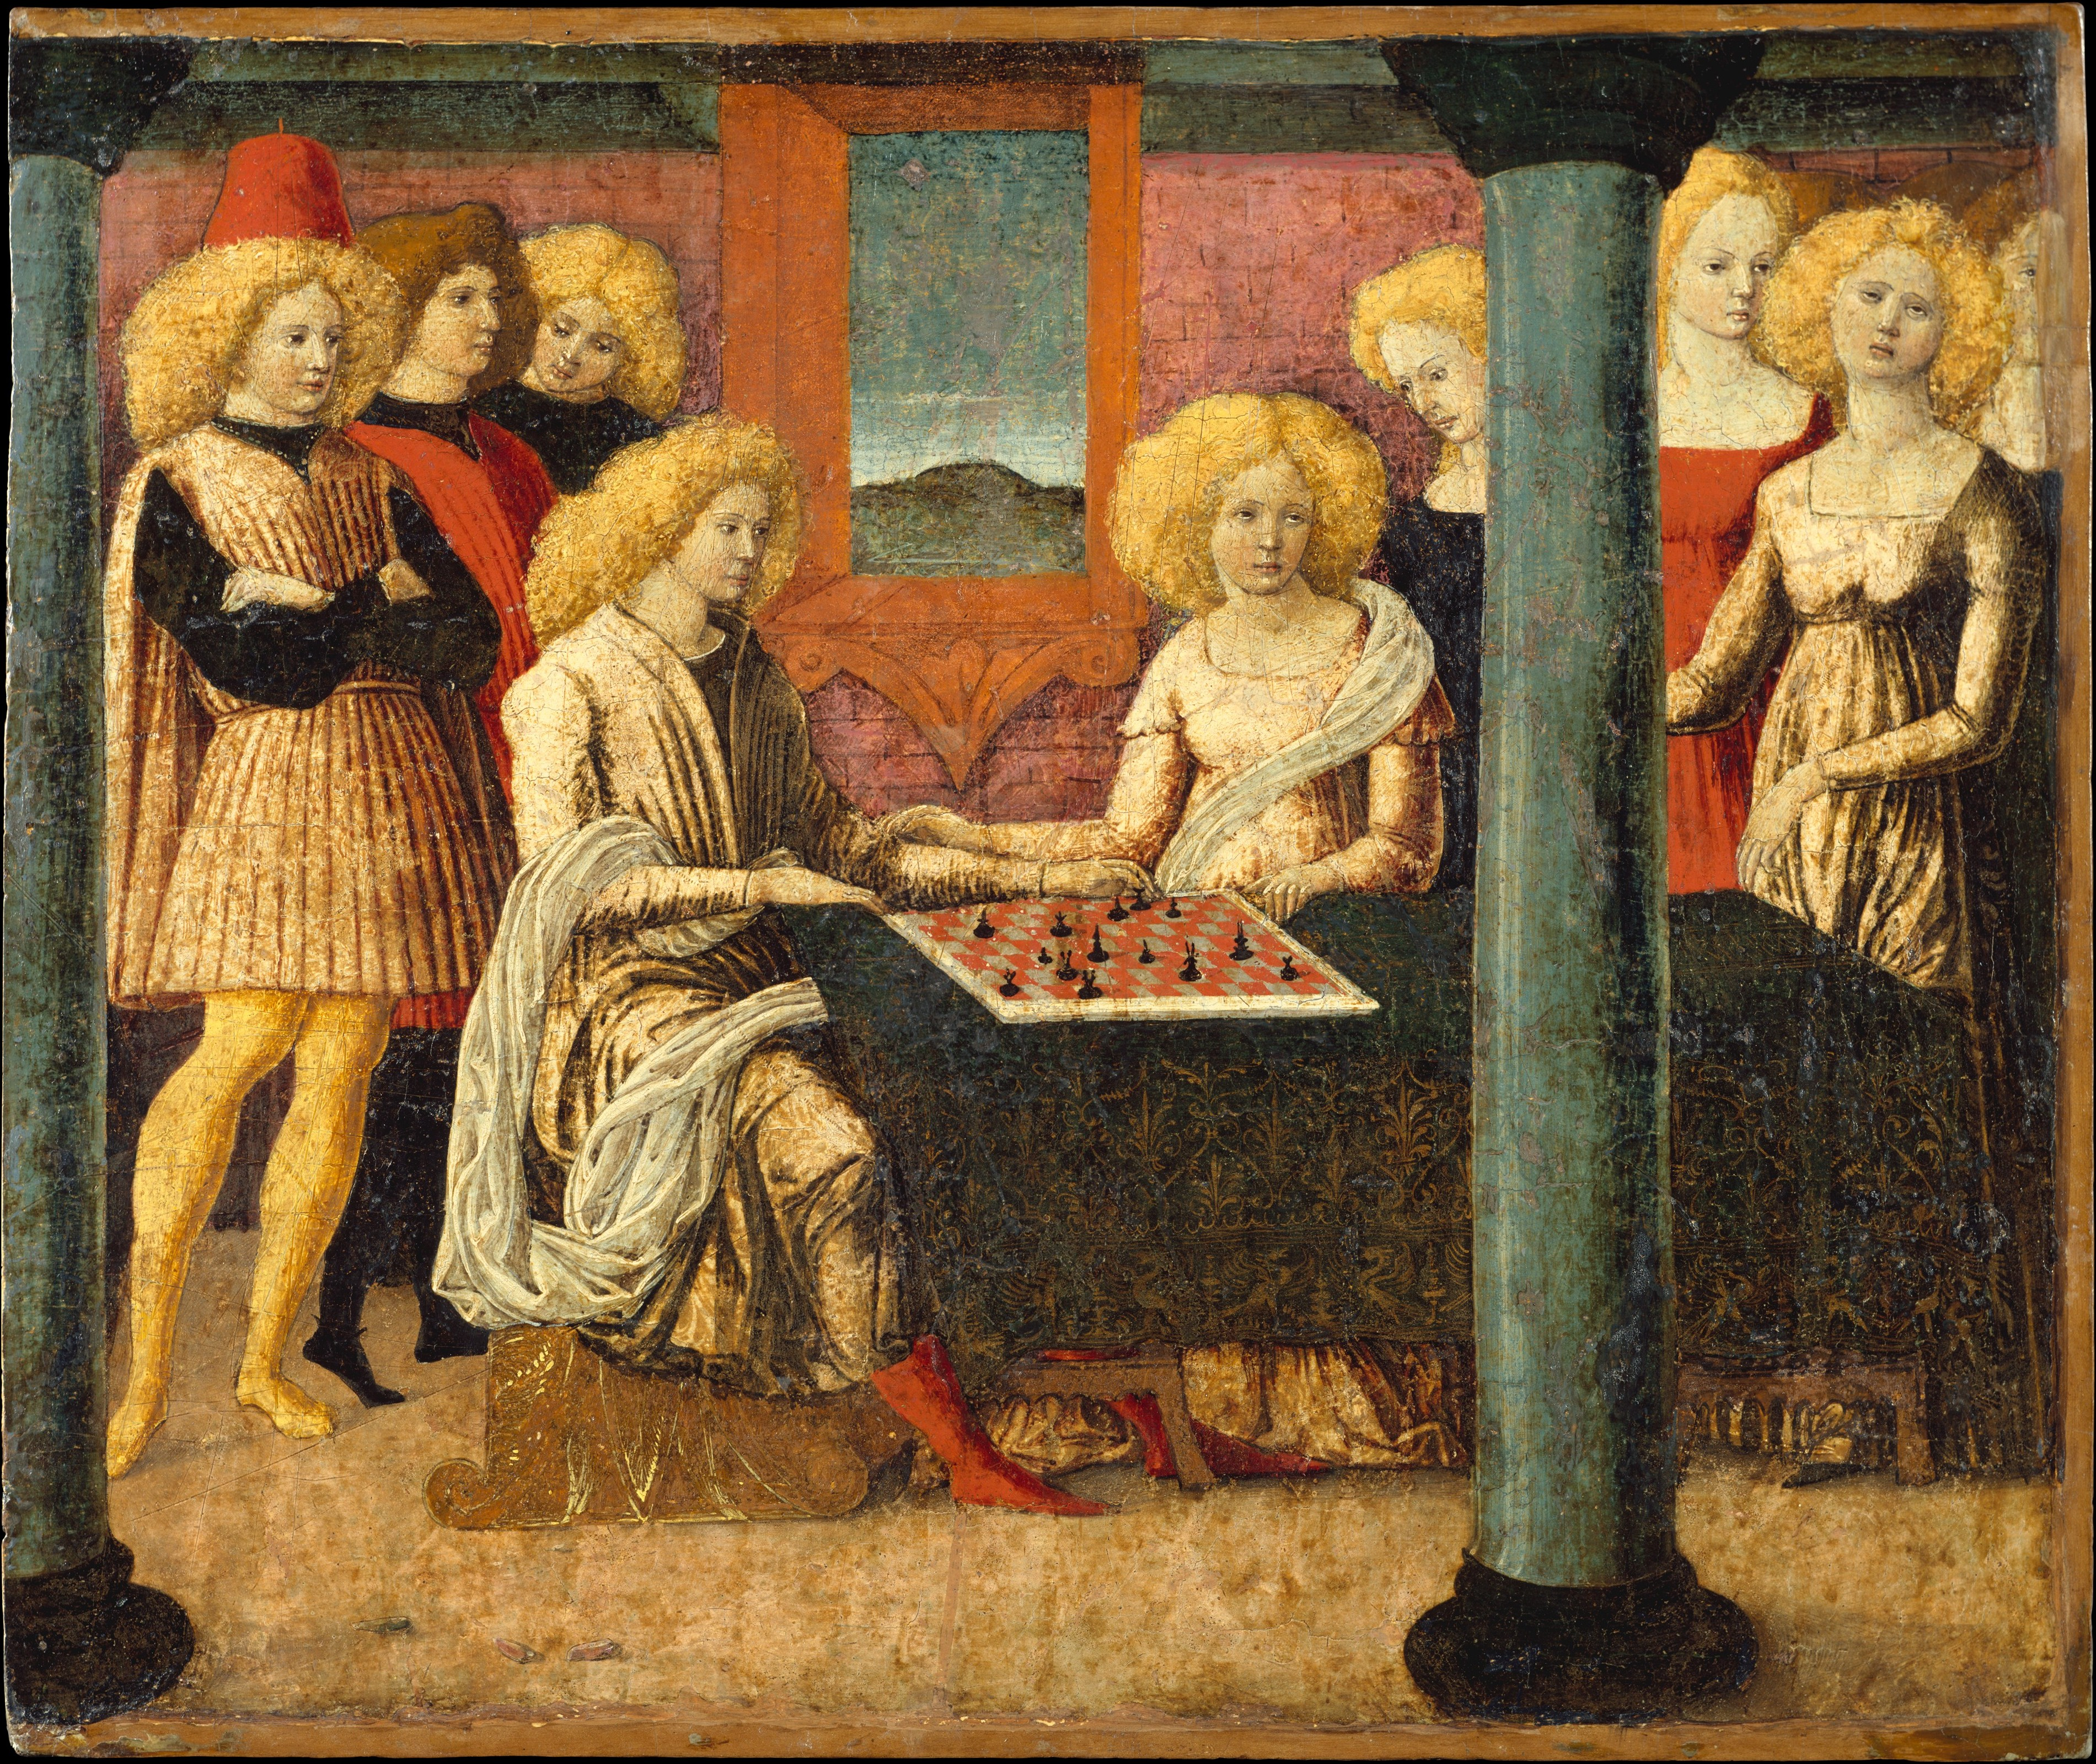 marco del buono giamberti the story of esther the met